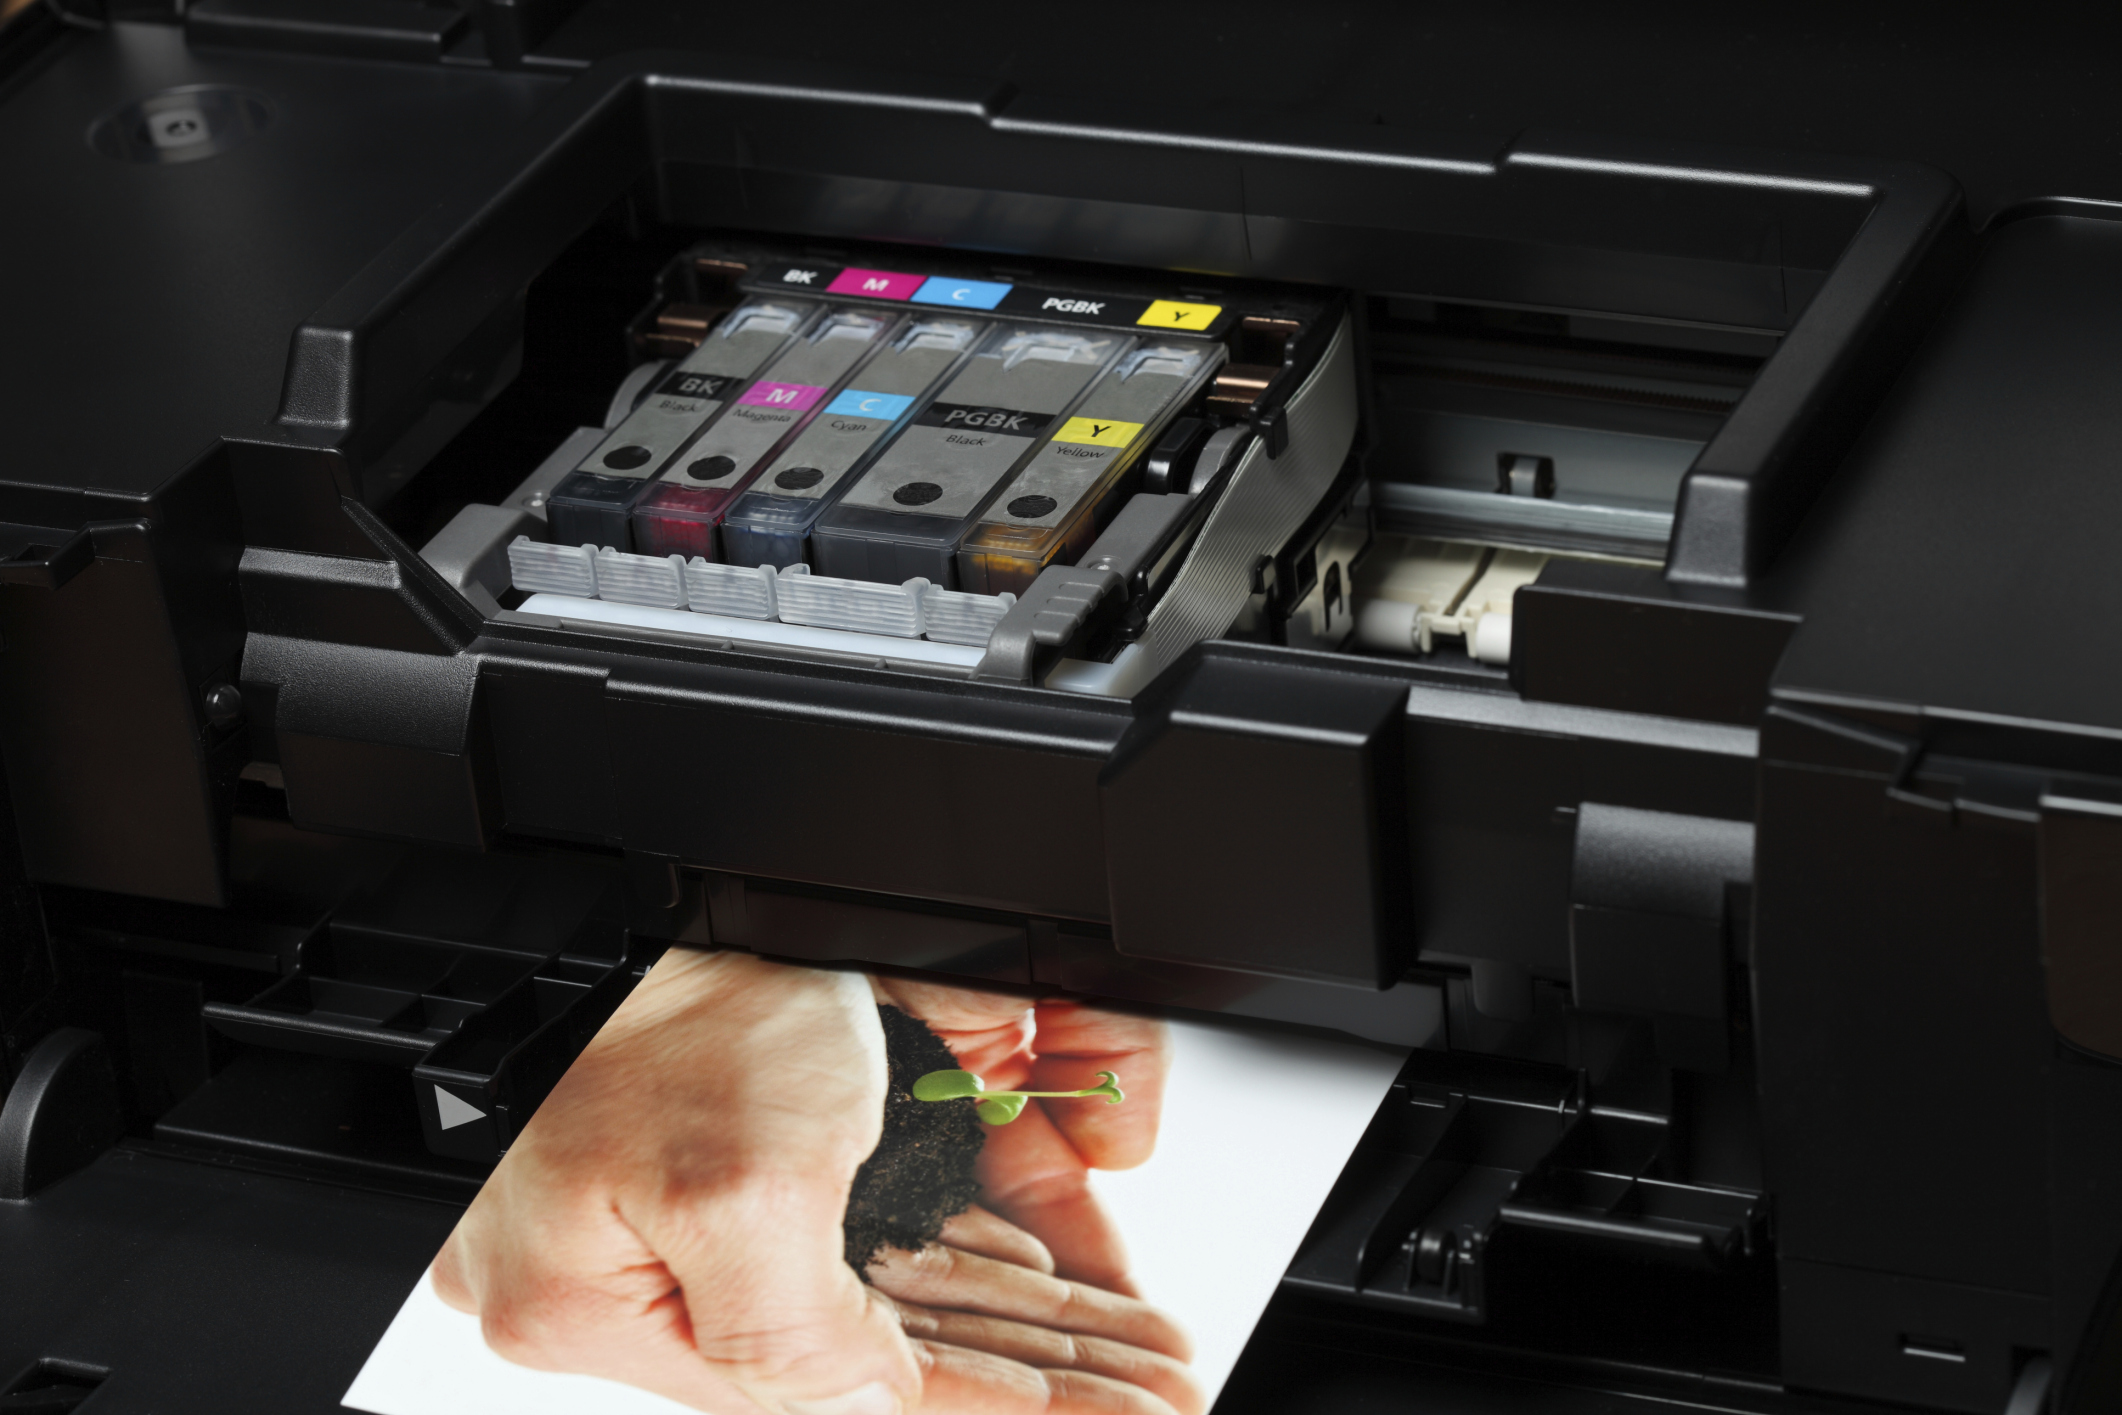 What Are the Advantages and Disadvantages of Inkjet Printers